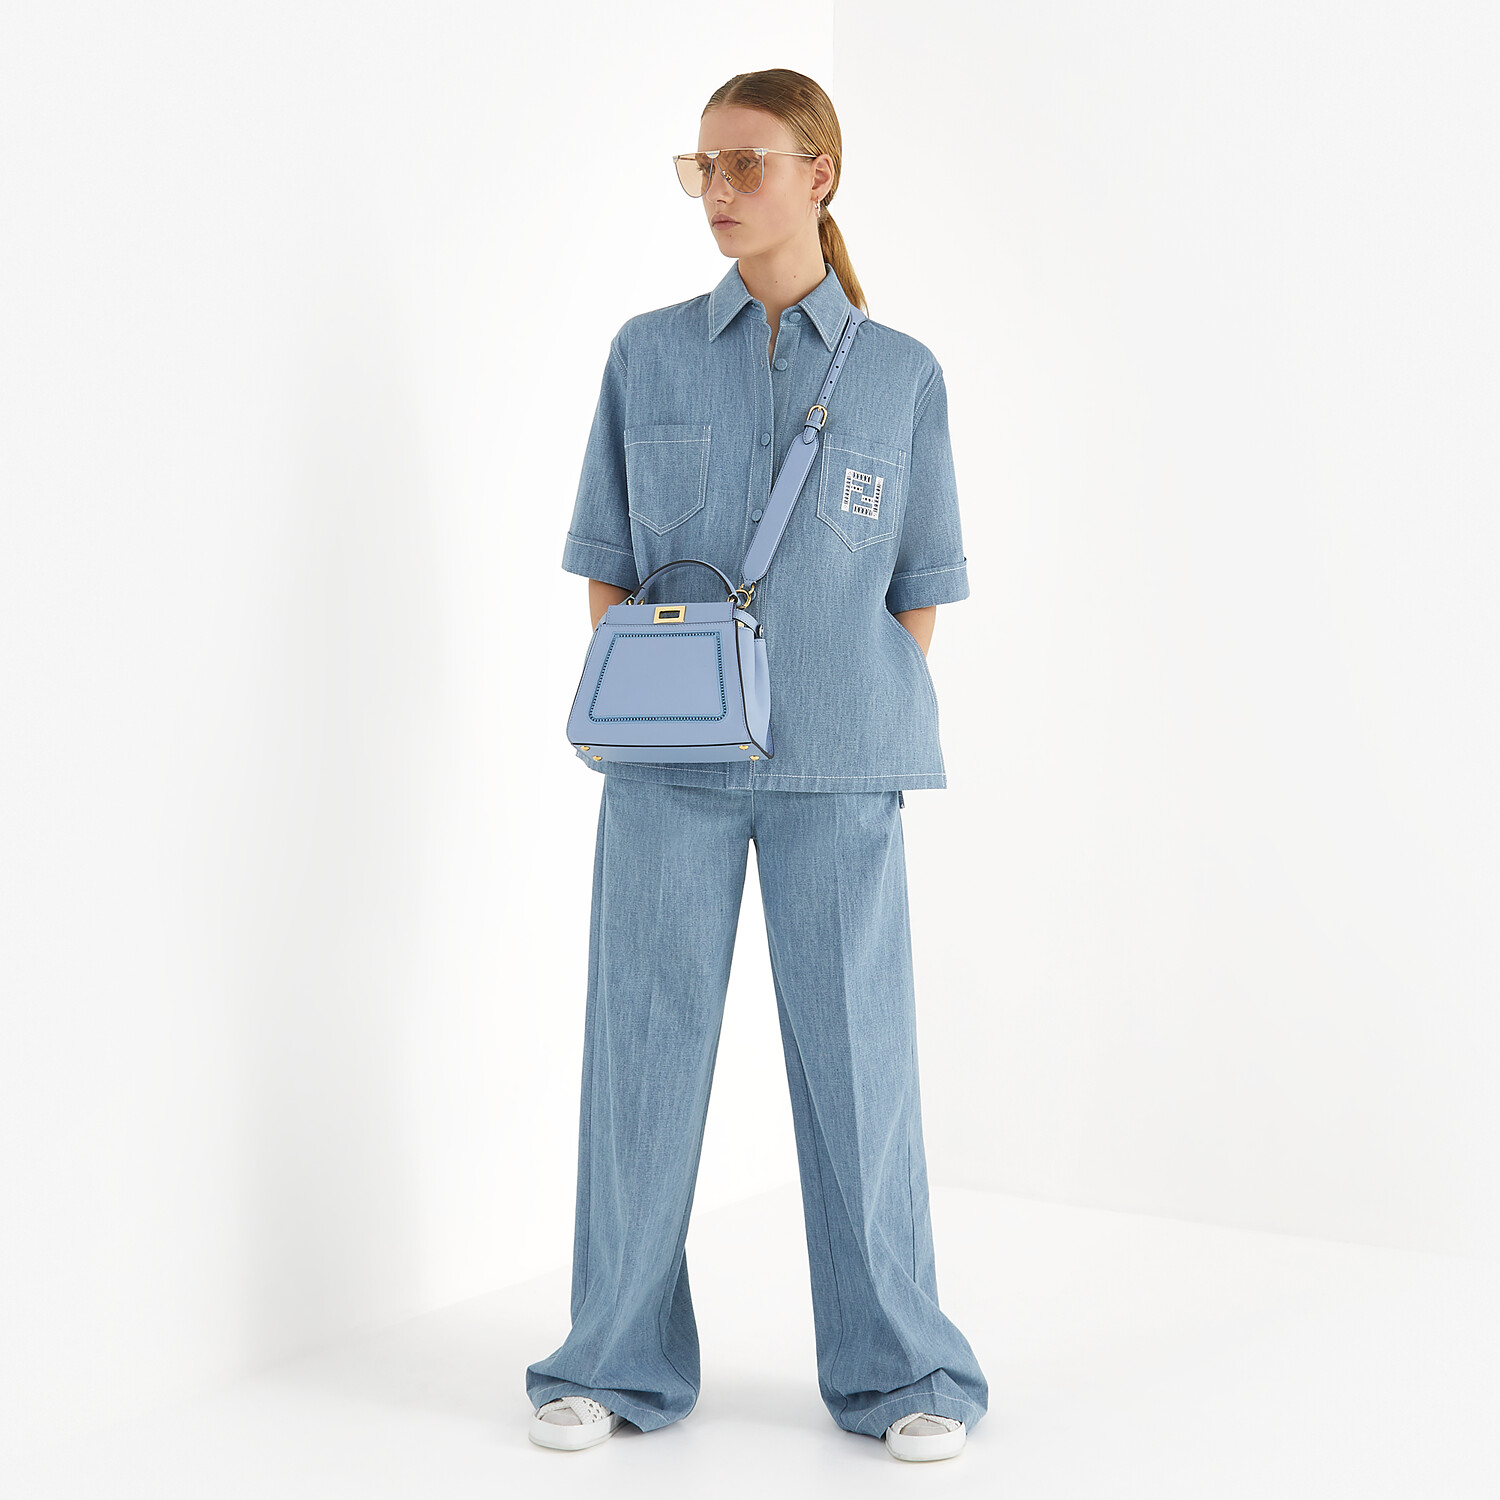 FENDI TROUSERS - Light blue chambray trousers - view 4 detail